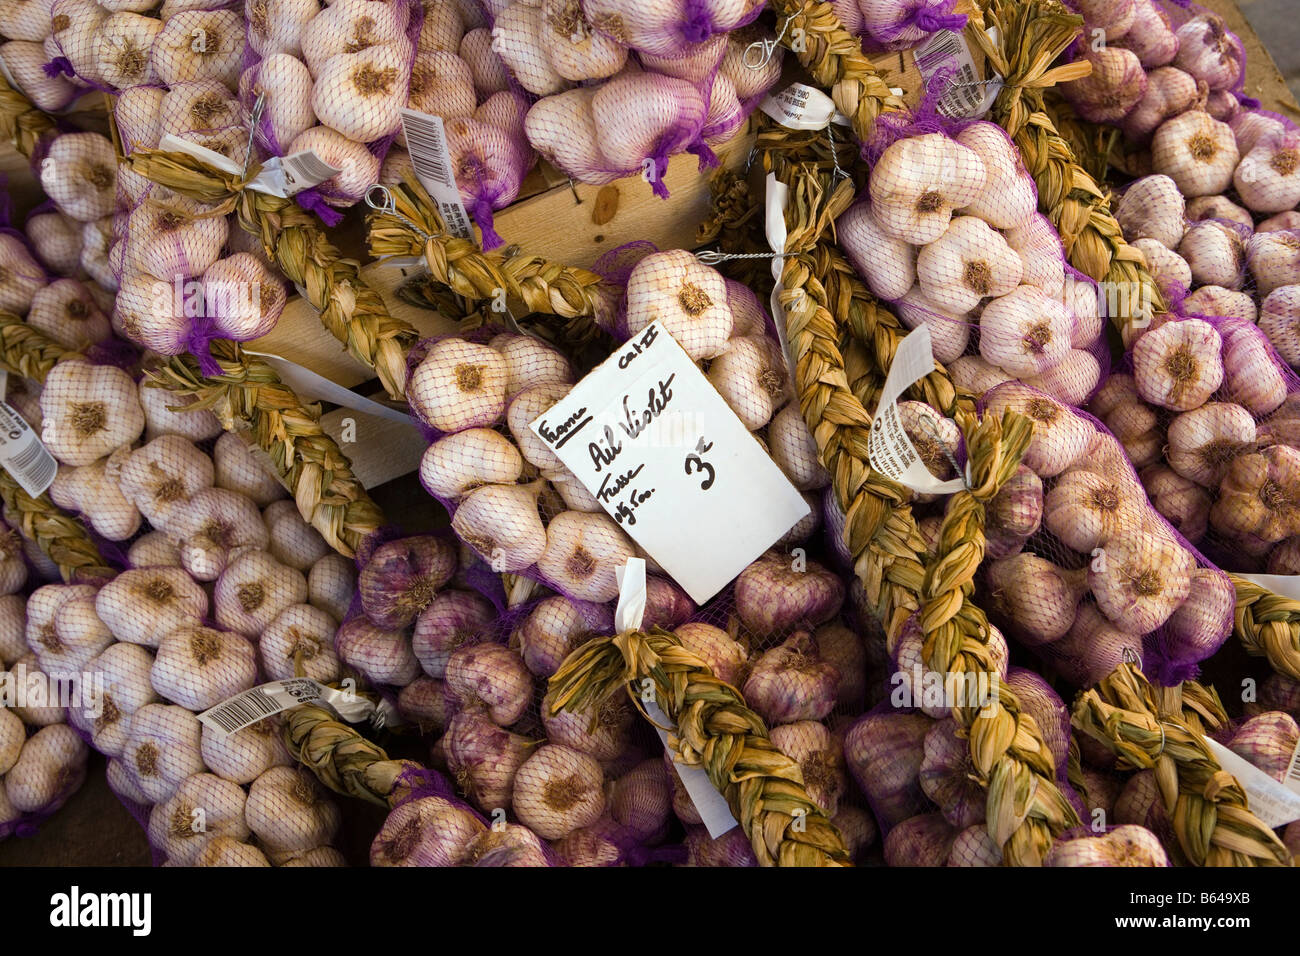 France, near Beaune, Burgundy, Market, Garlics - Stock Image